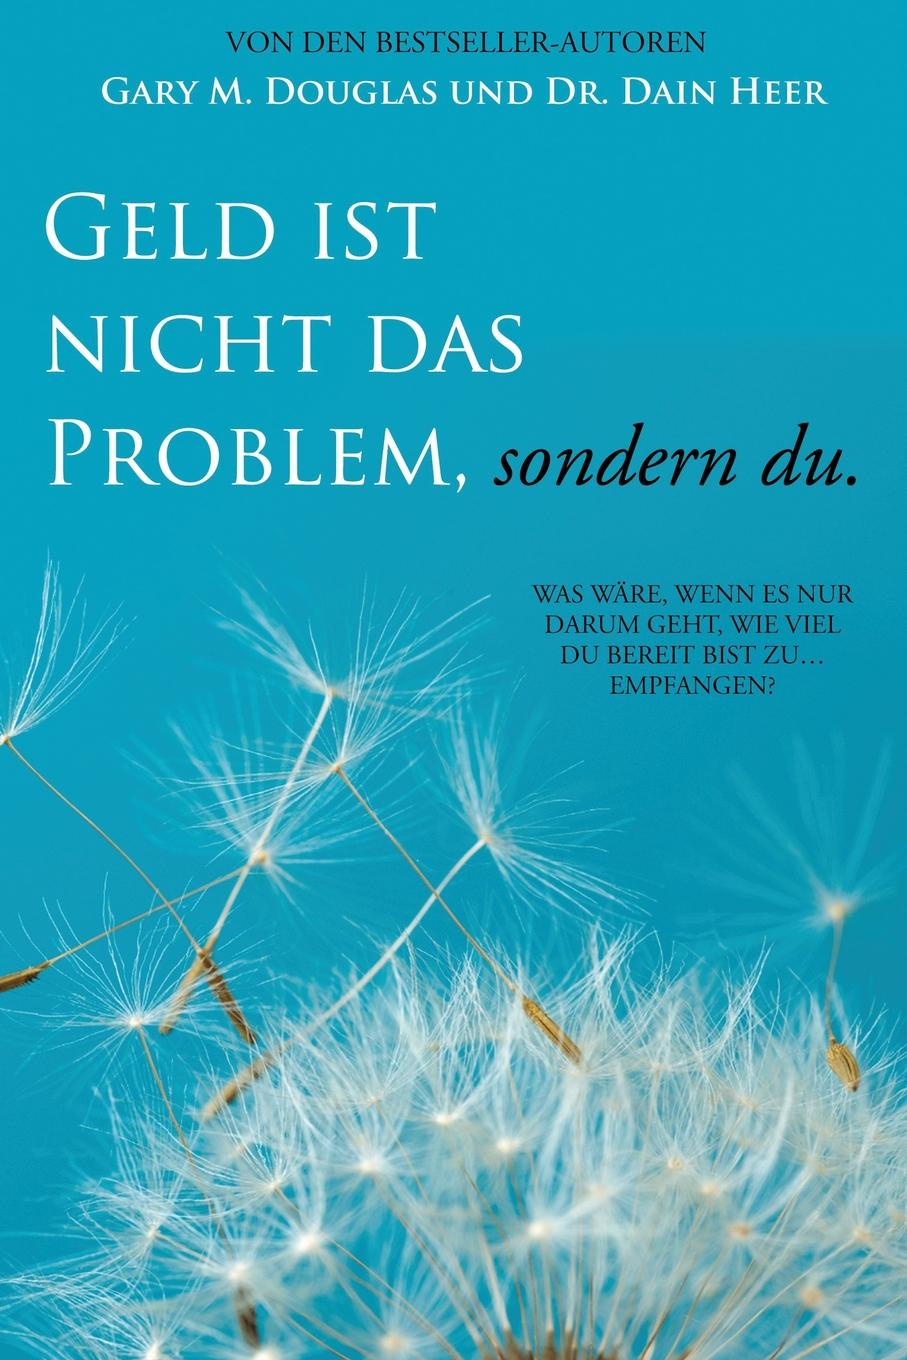 Gary M. Douglas, Dr. Dain Heer Geld ist nicht das Problem, sondern du - Money Isn.t the Problem German недорого